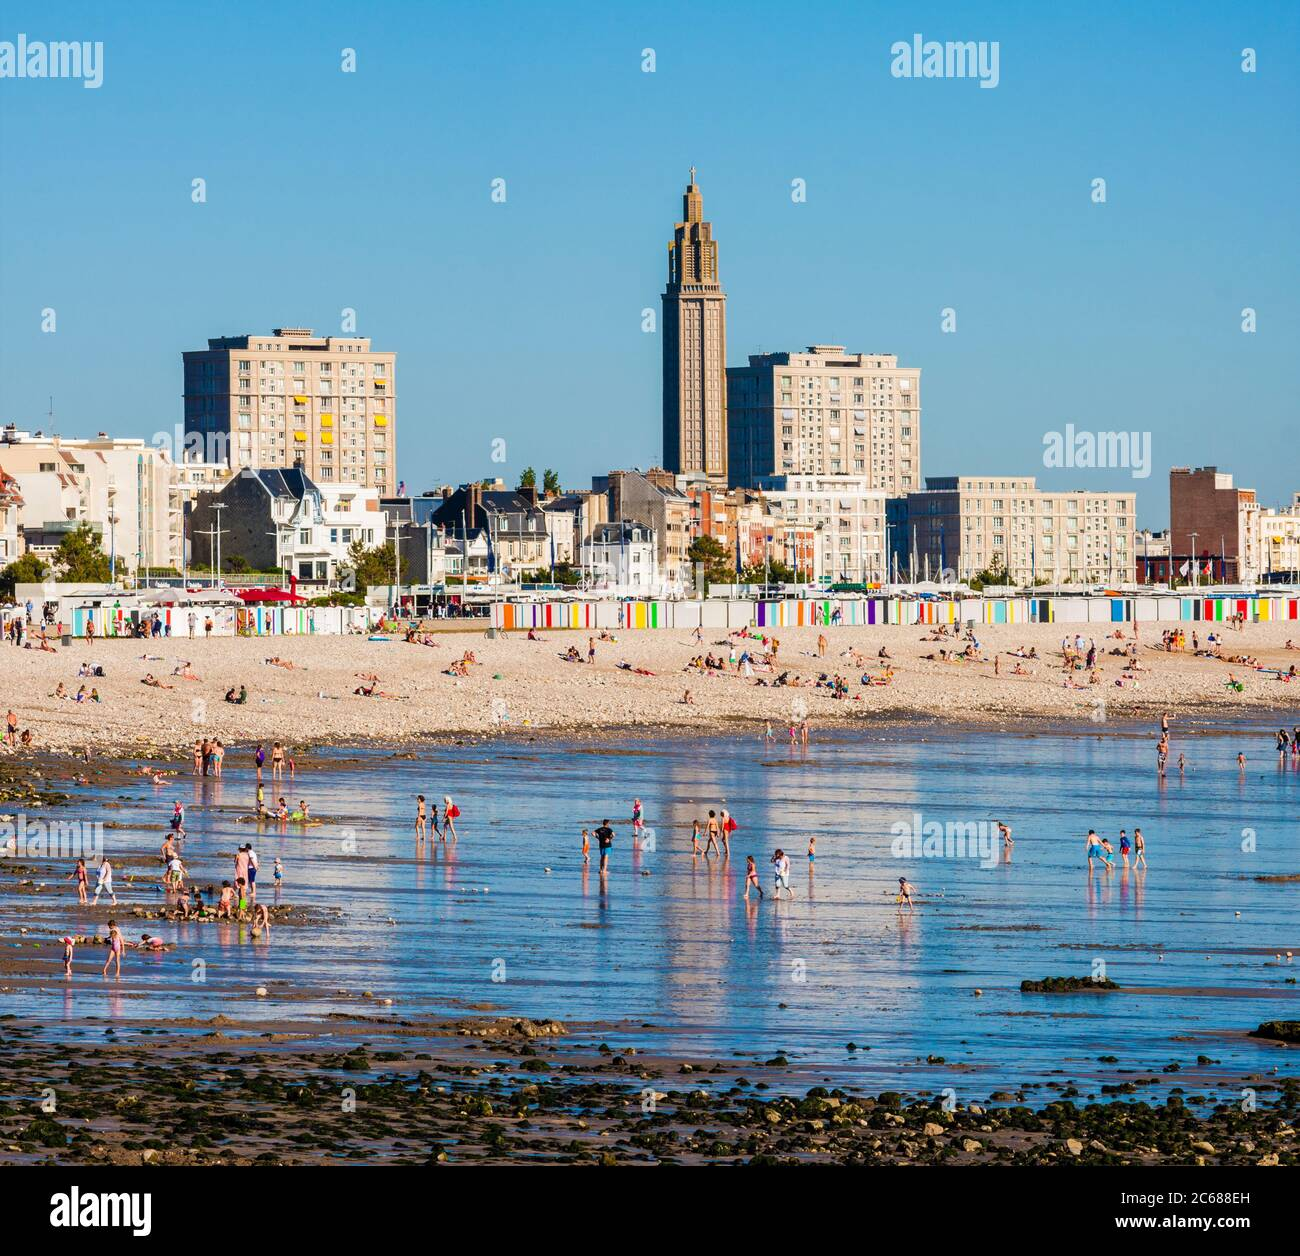 Low tide at Le Havre beach, Normandy, France Stock Photo